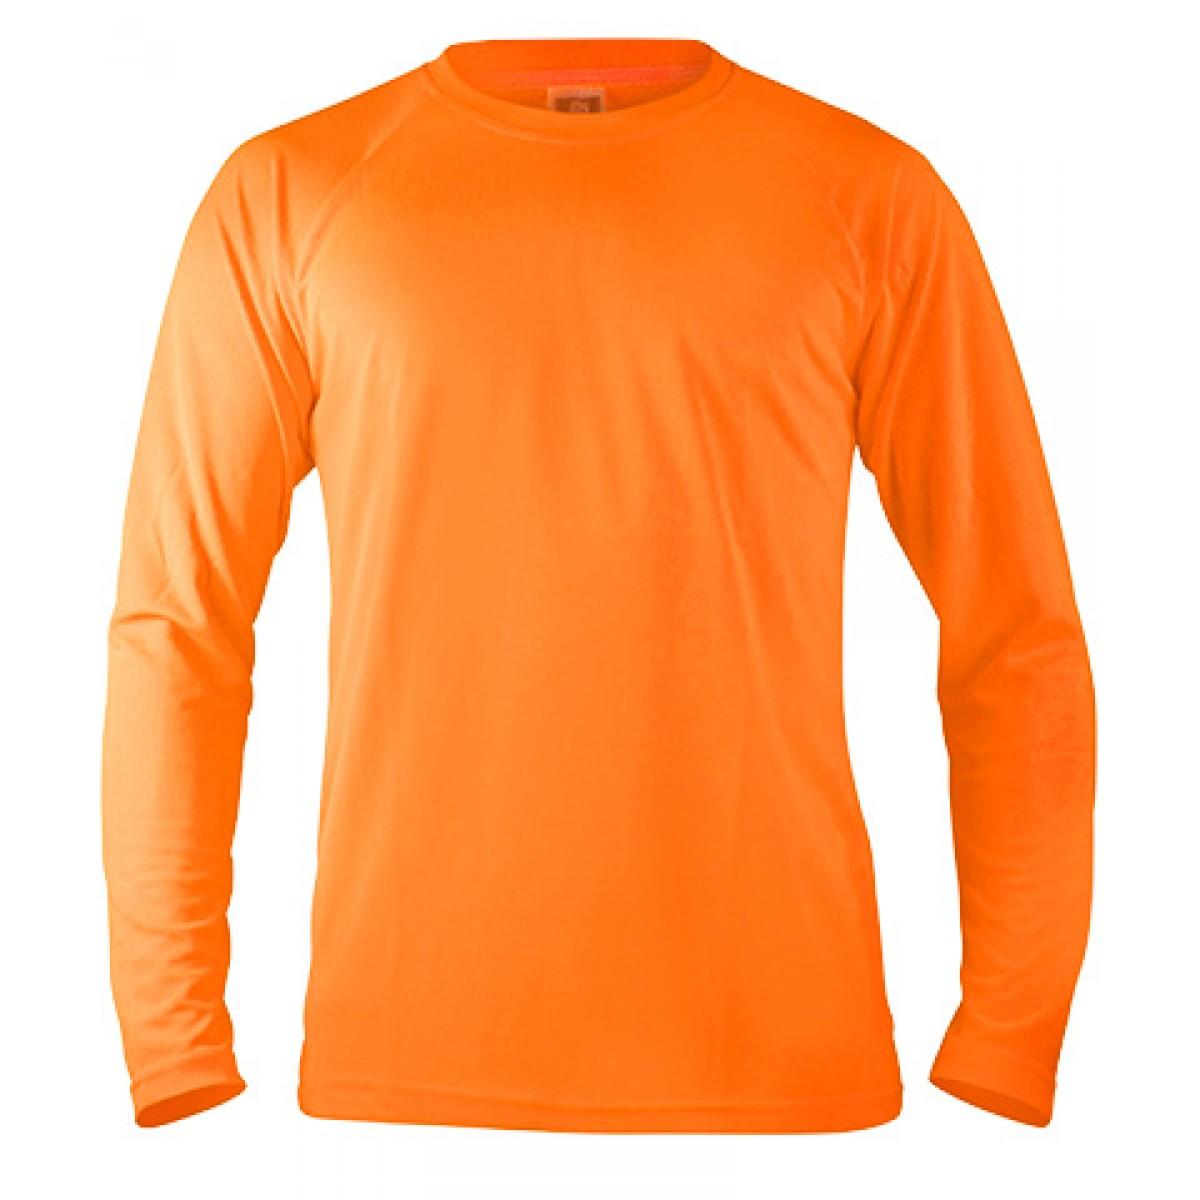 Long Sleeve Performance -Safety Orange-XS